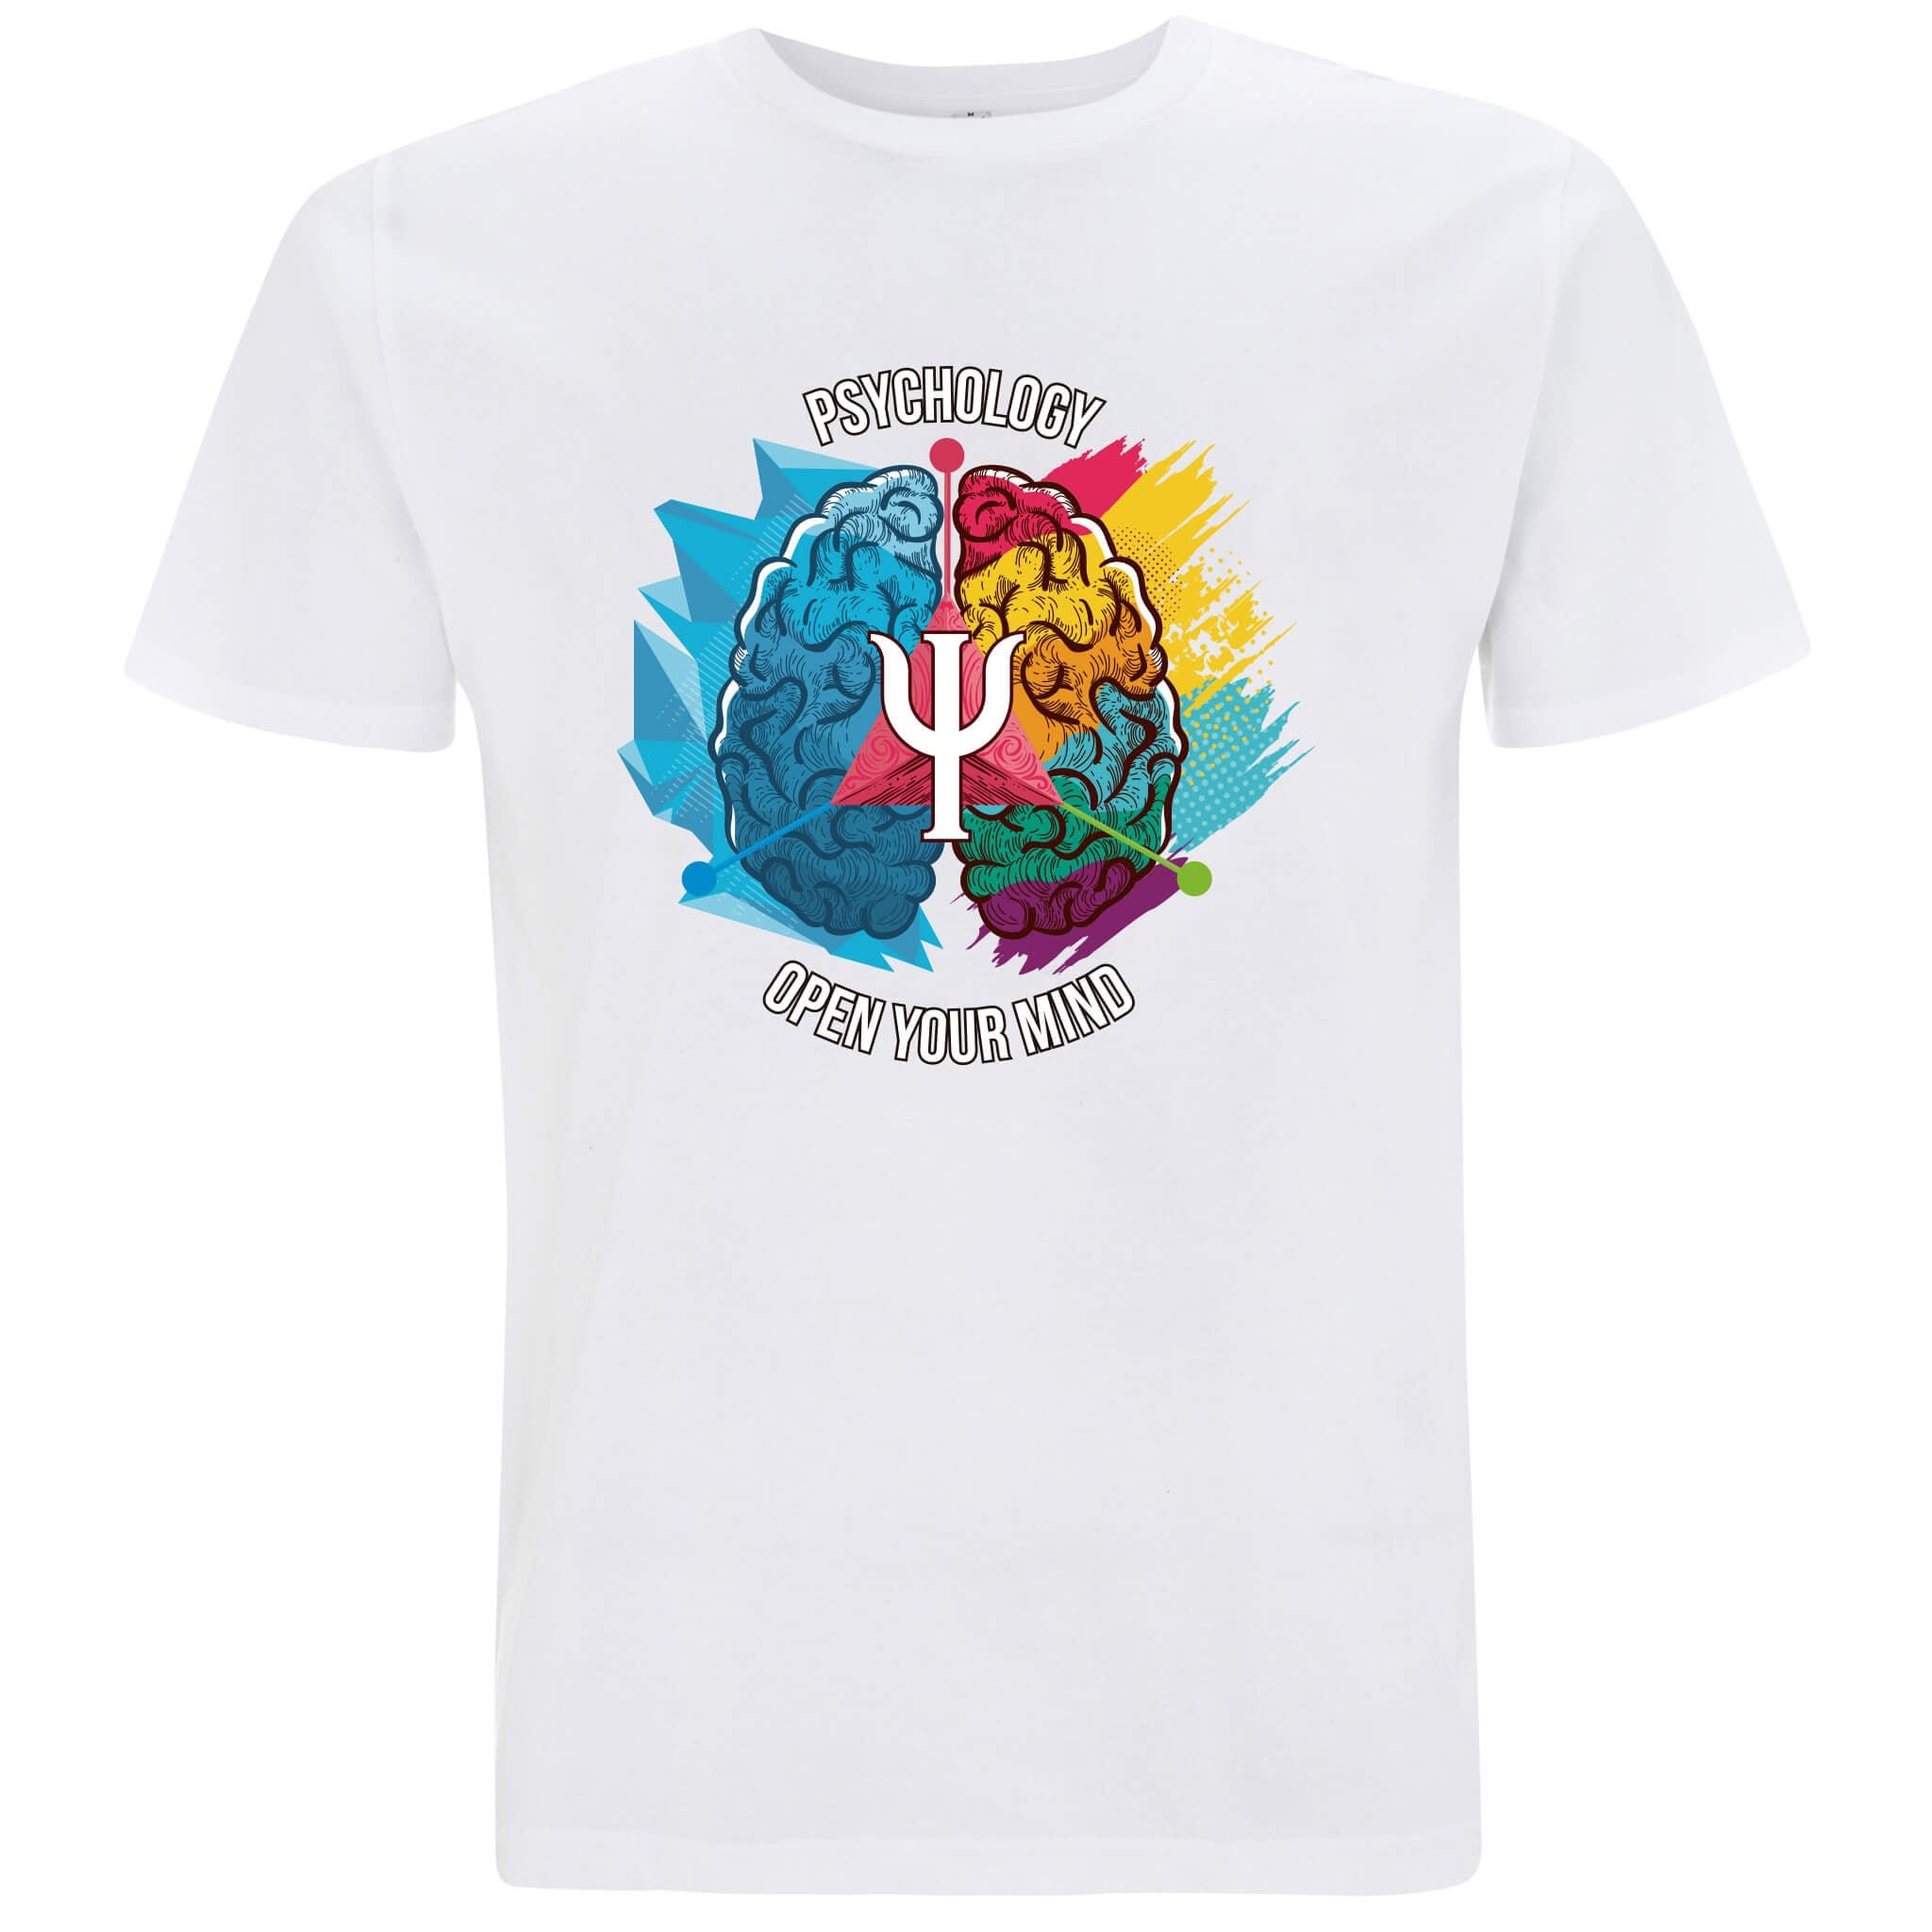 Laurea in psicologia - T-shirt Uomo - T-Shirt by Fol The Brand